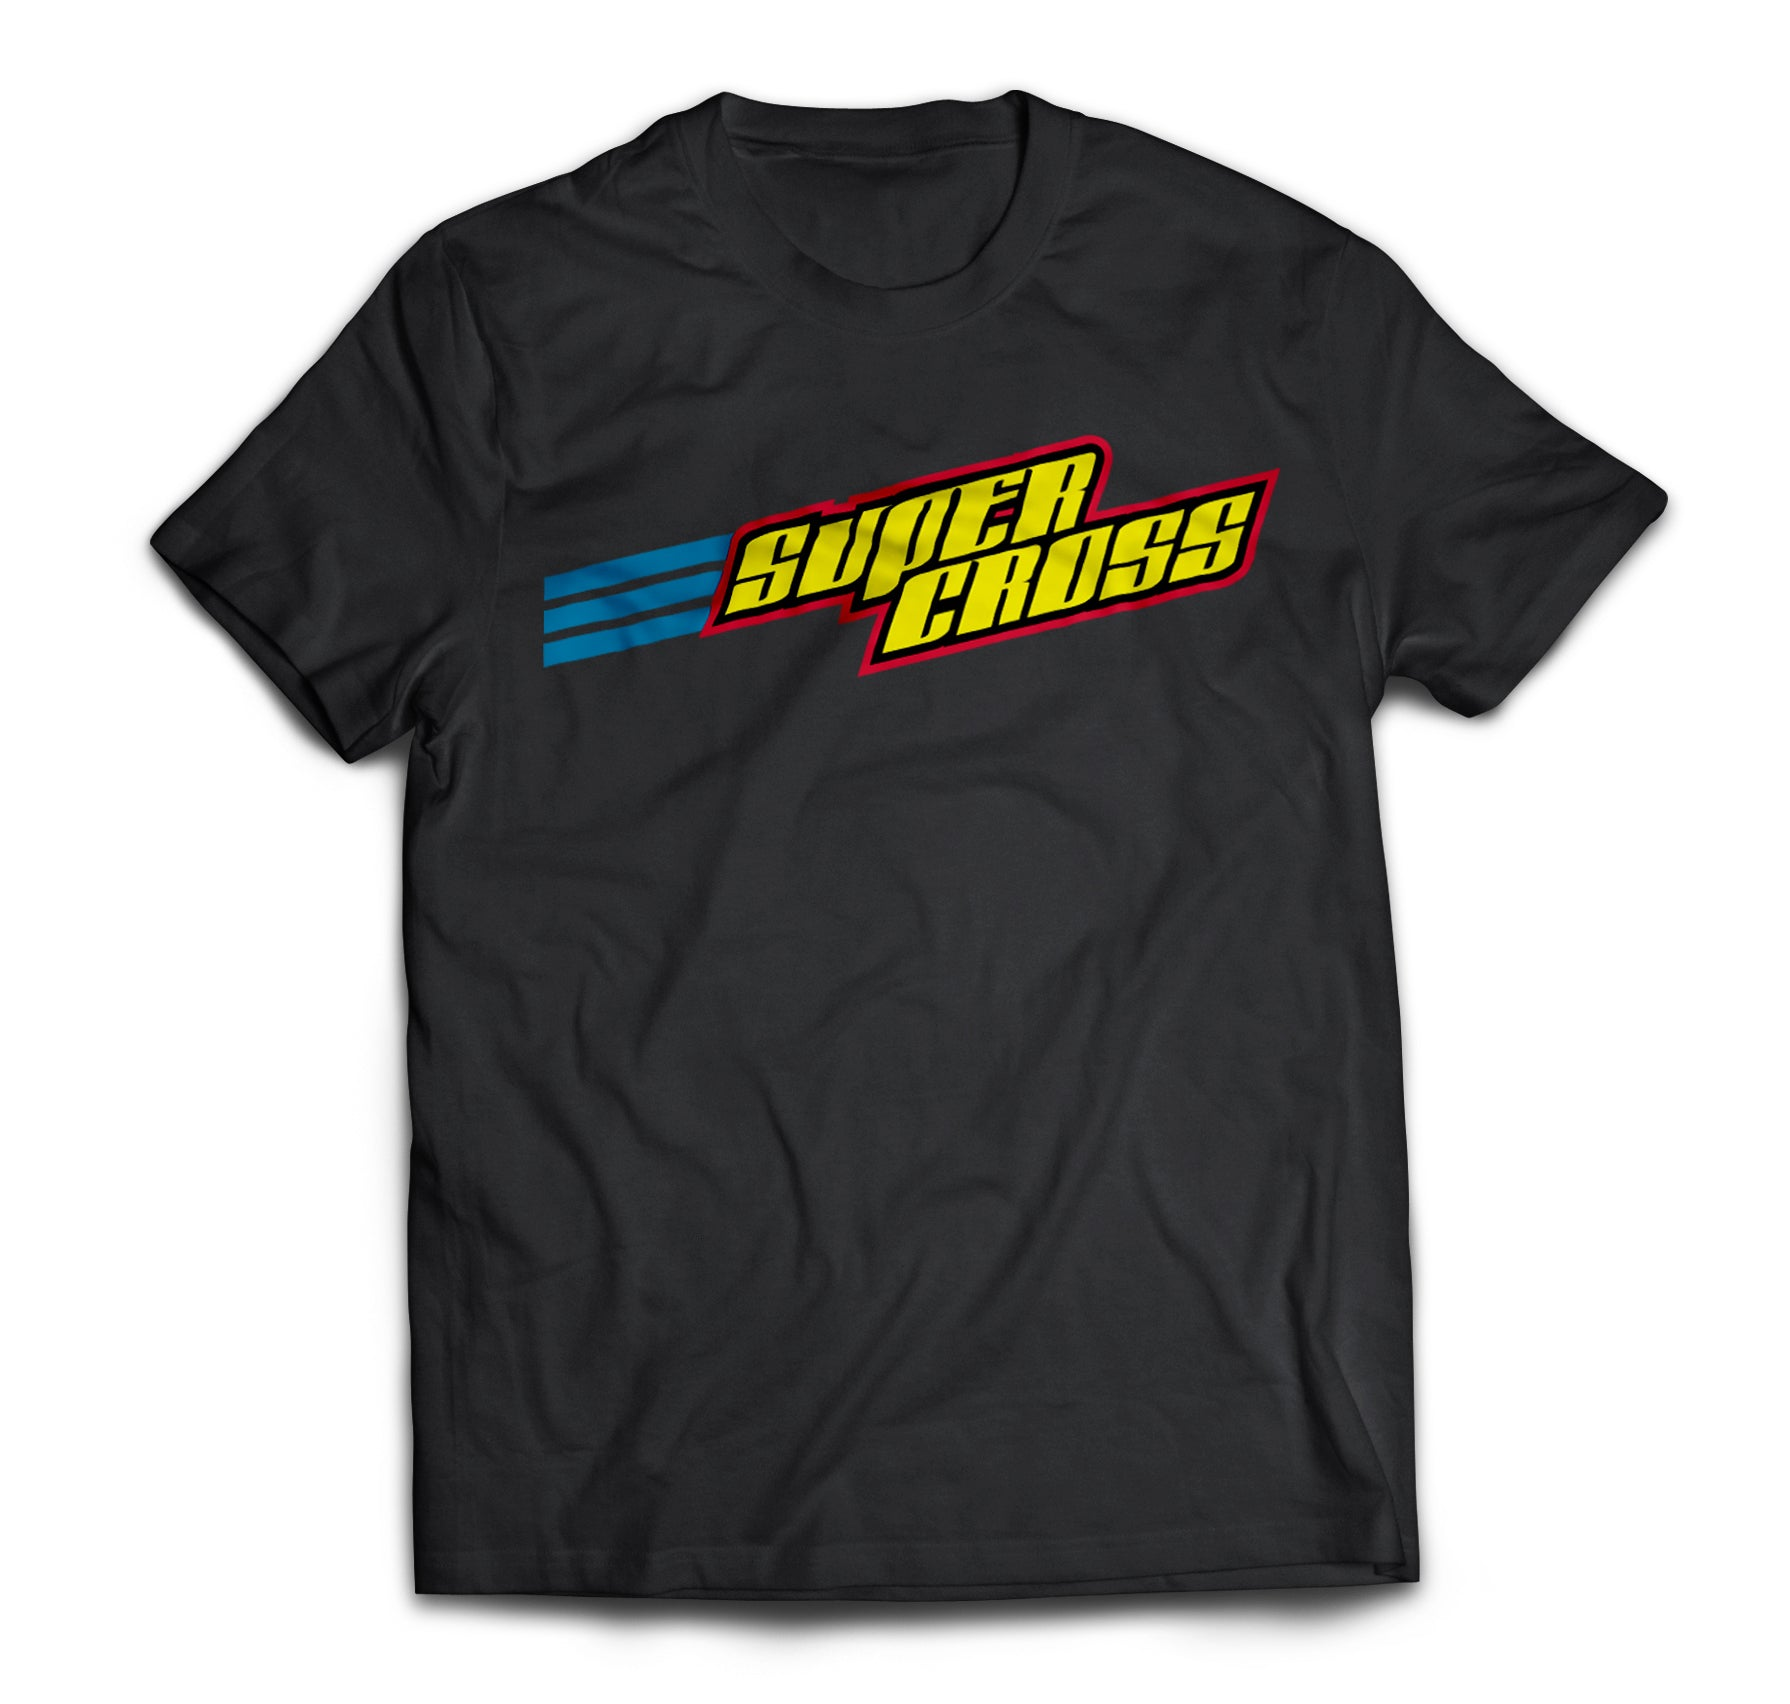 Supercross BMX | Stacked Supercross Logo Shirt - Supercross BMX - BMX Racing